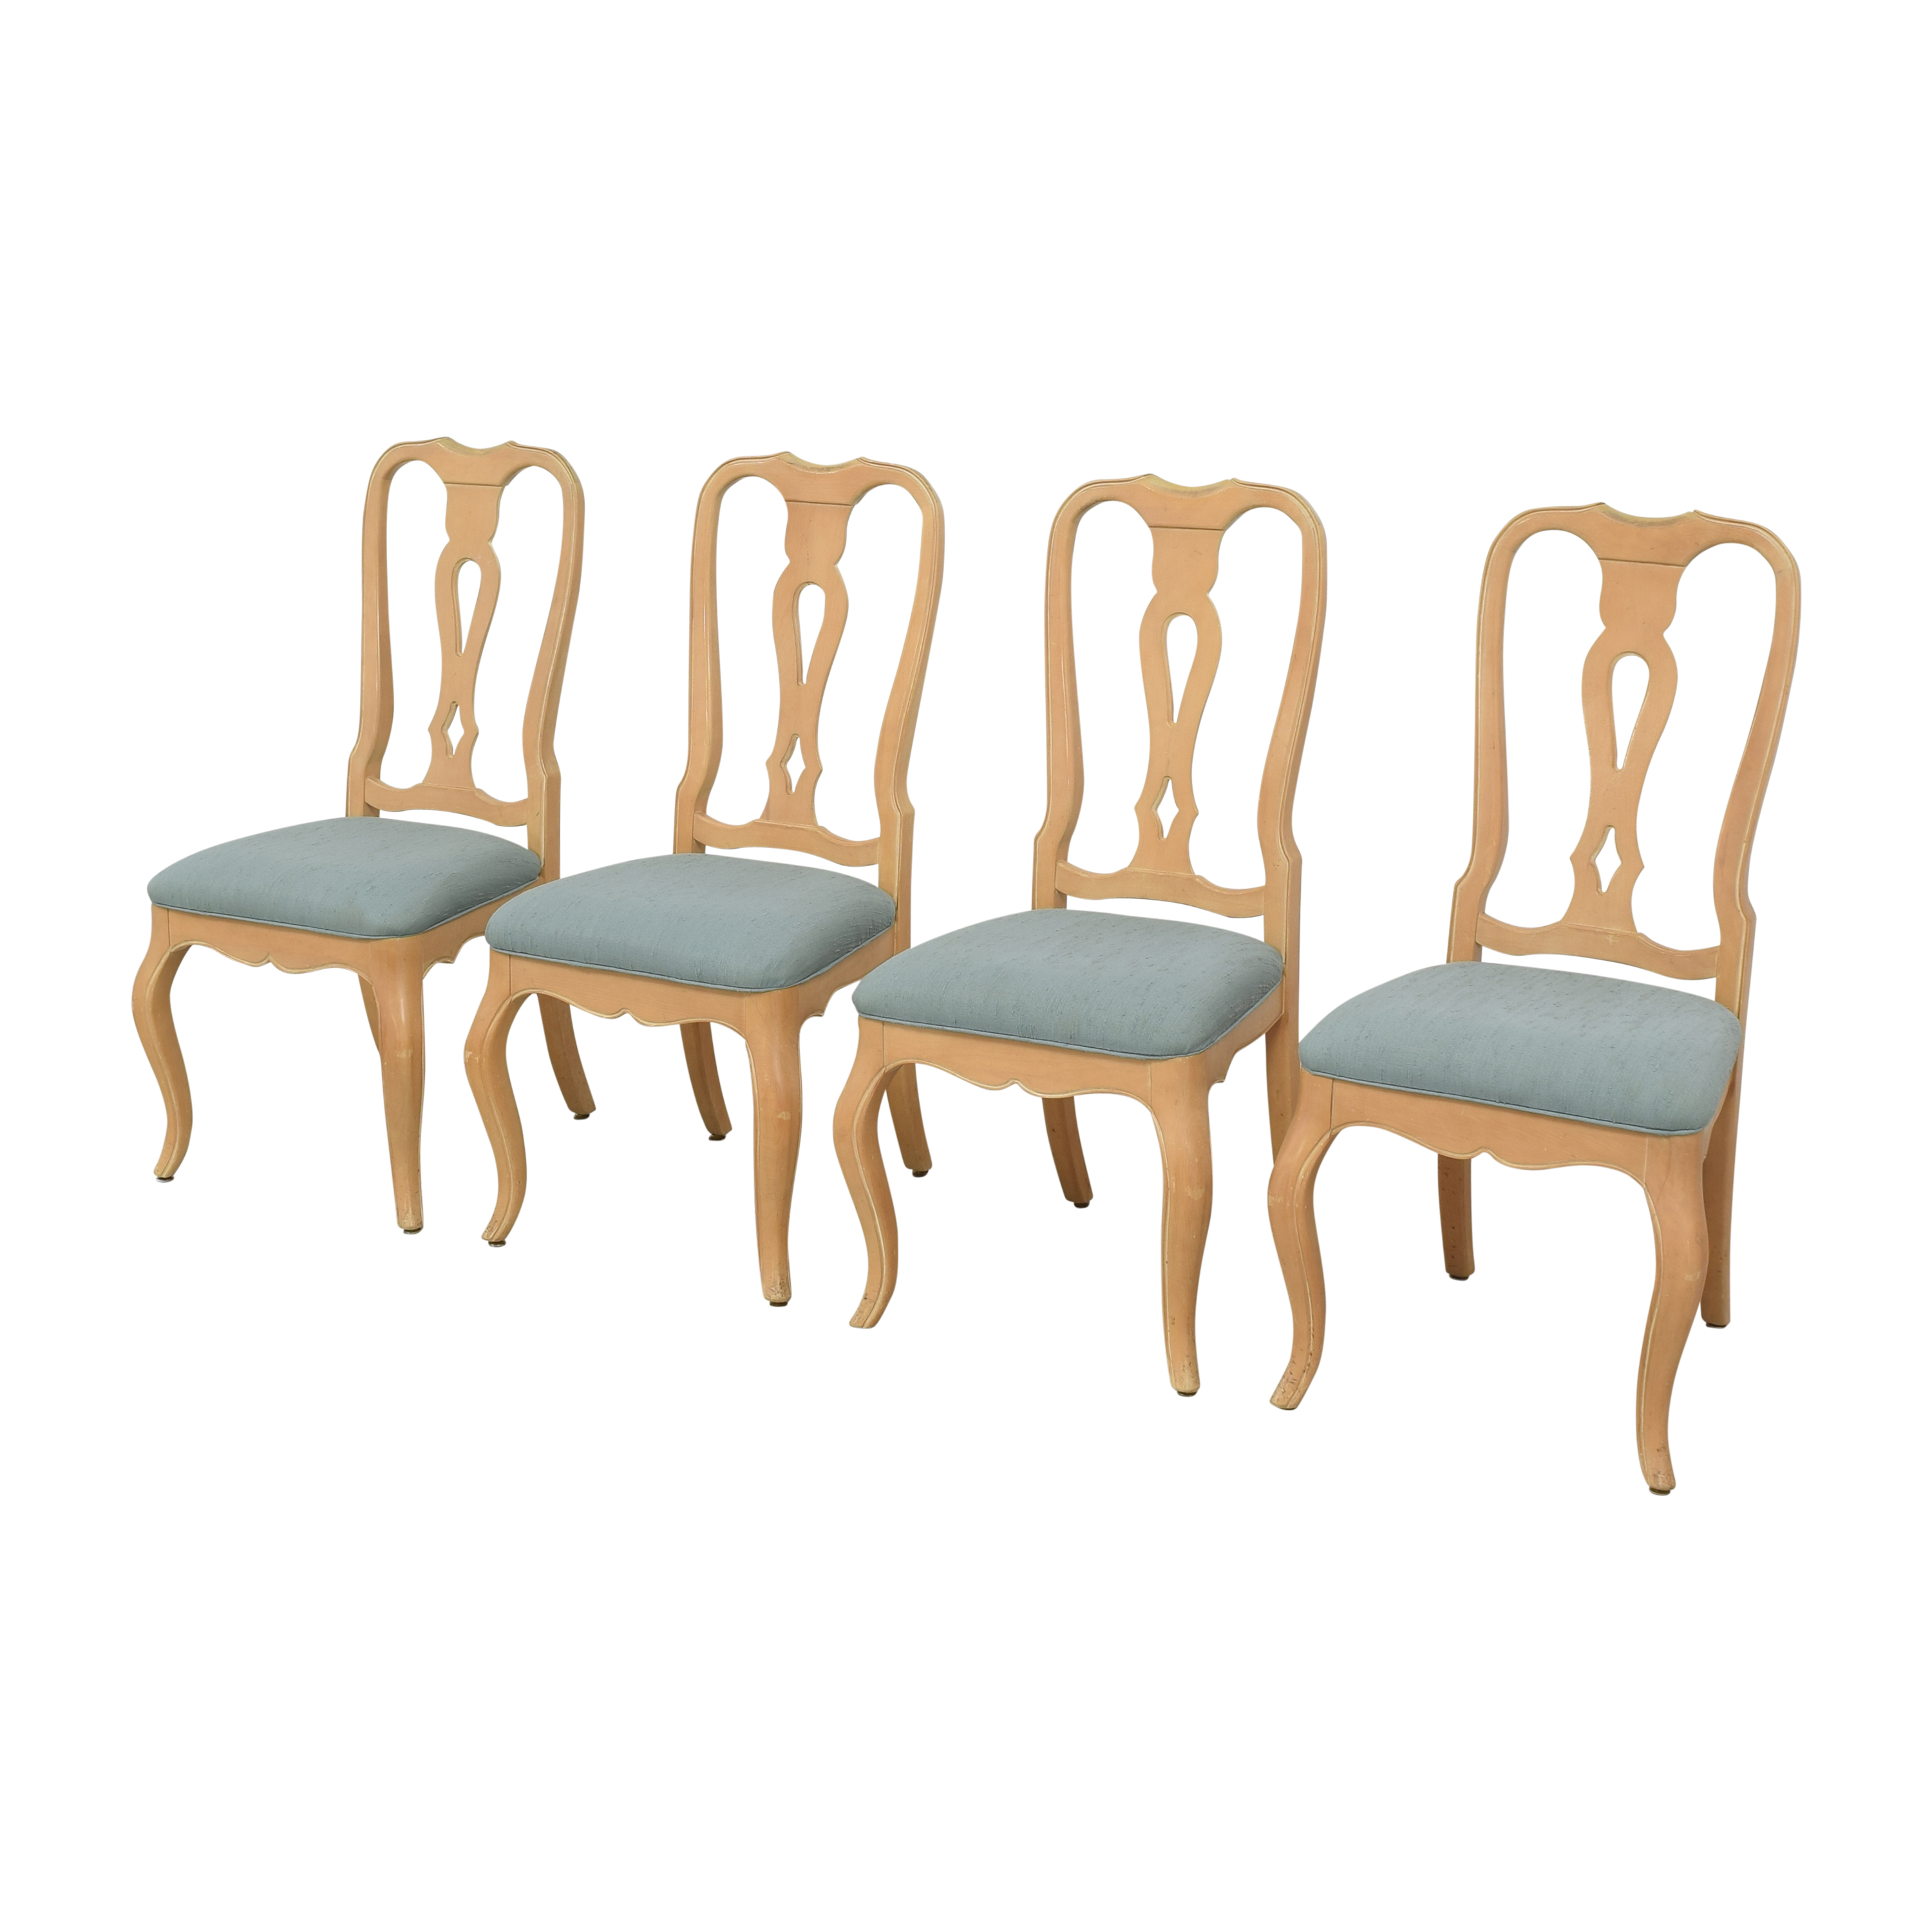 shop Ethan Allen Upholstered Dining Chairs Ethan Allen Dining Chairs